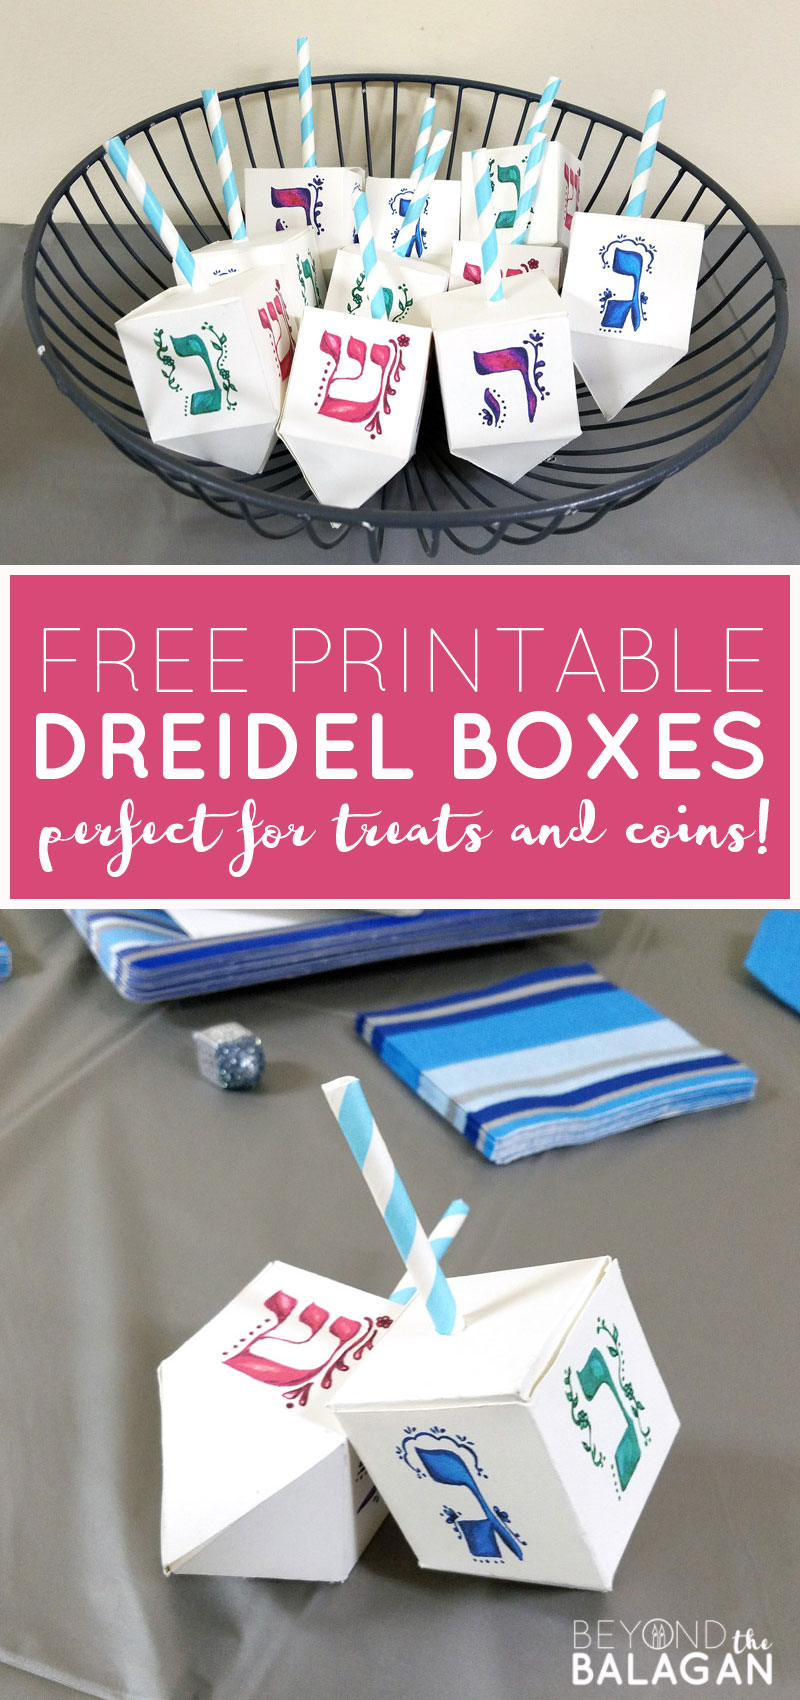 These free printable dreidel boxes are perfect for the Jewish holiday of Hanukkah or Chanukah as it's often called! It's perfect for filling with chocolate coins - or gelt- and make a great Hanukkah party favor or treat box. This Hannukah craft is great to use for small gifts too!